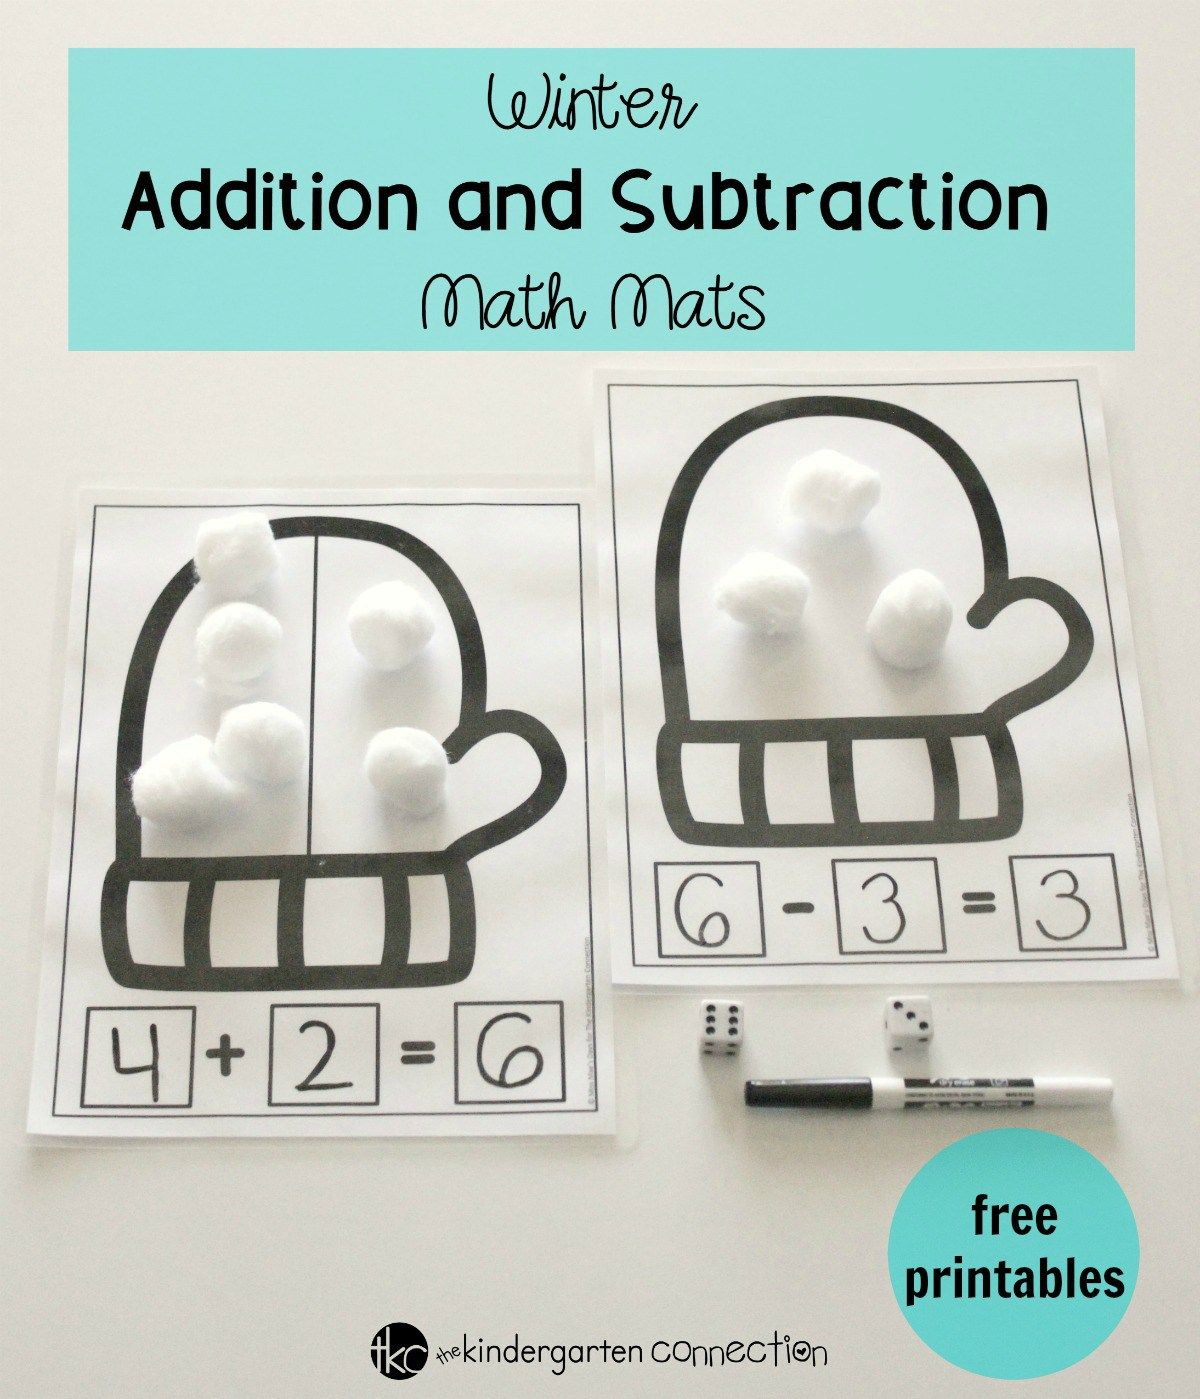 Mitten Addition And Subtraction Math Mats